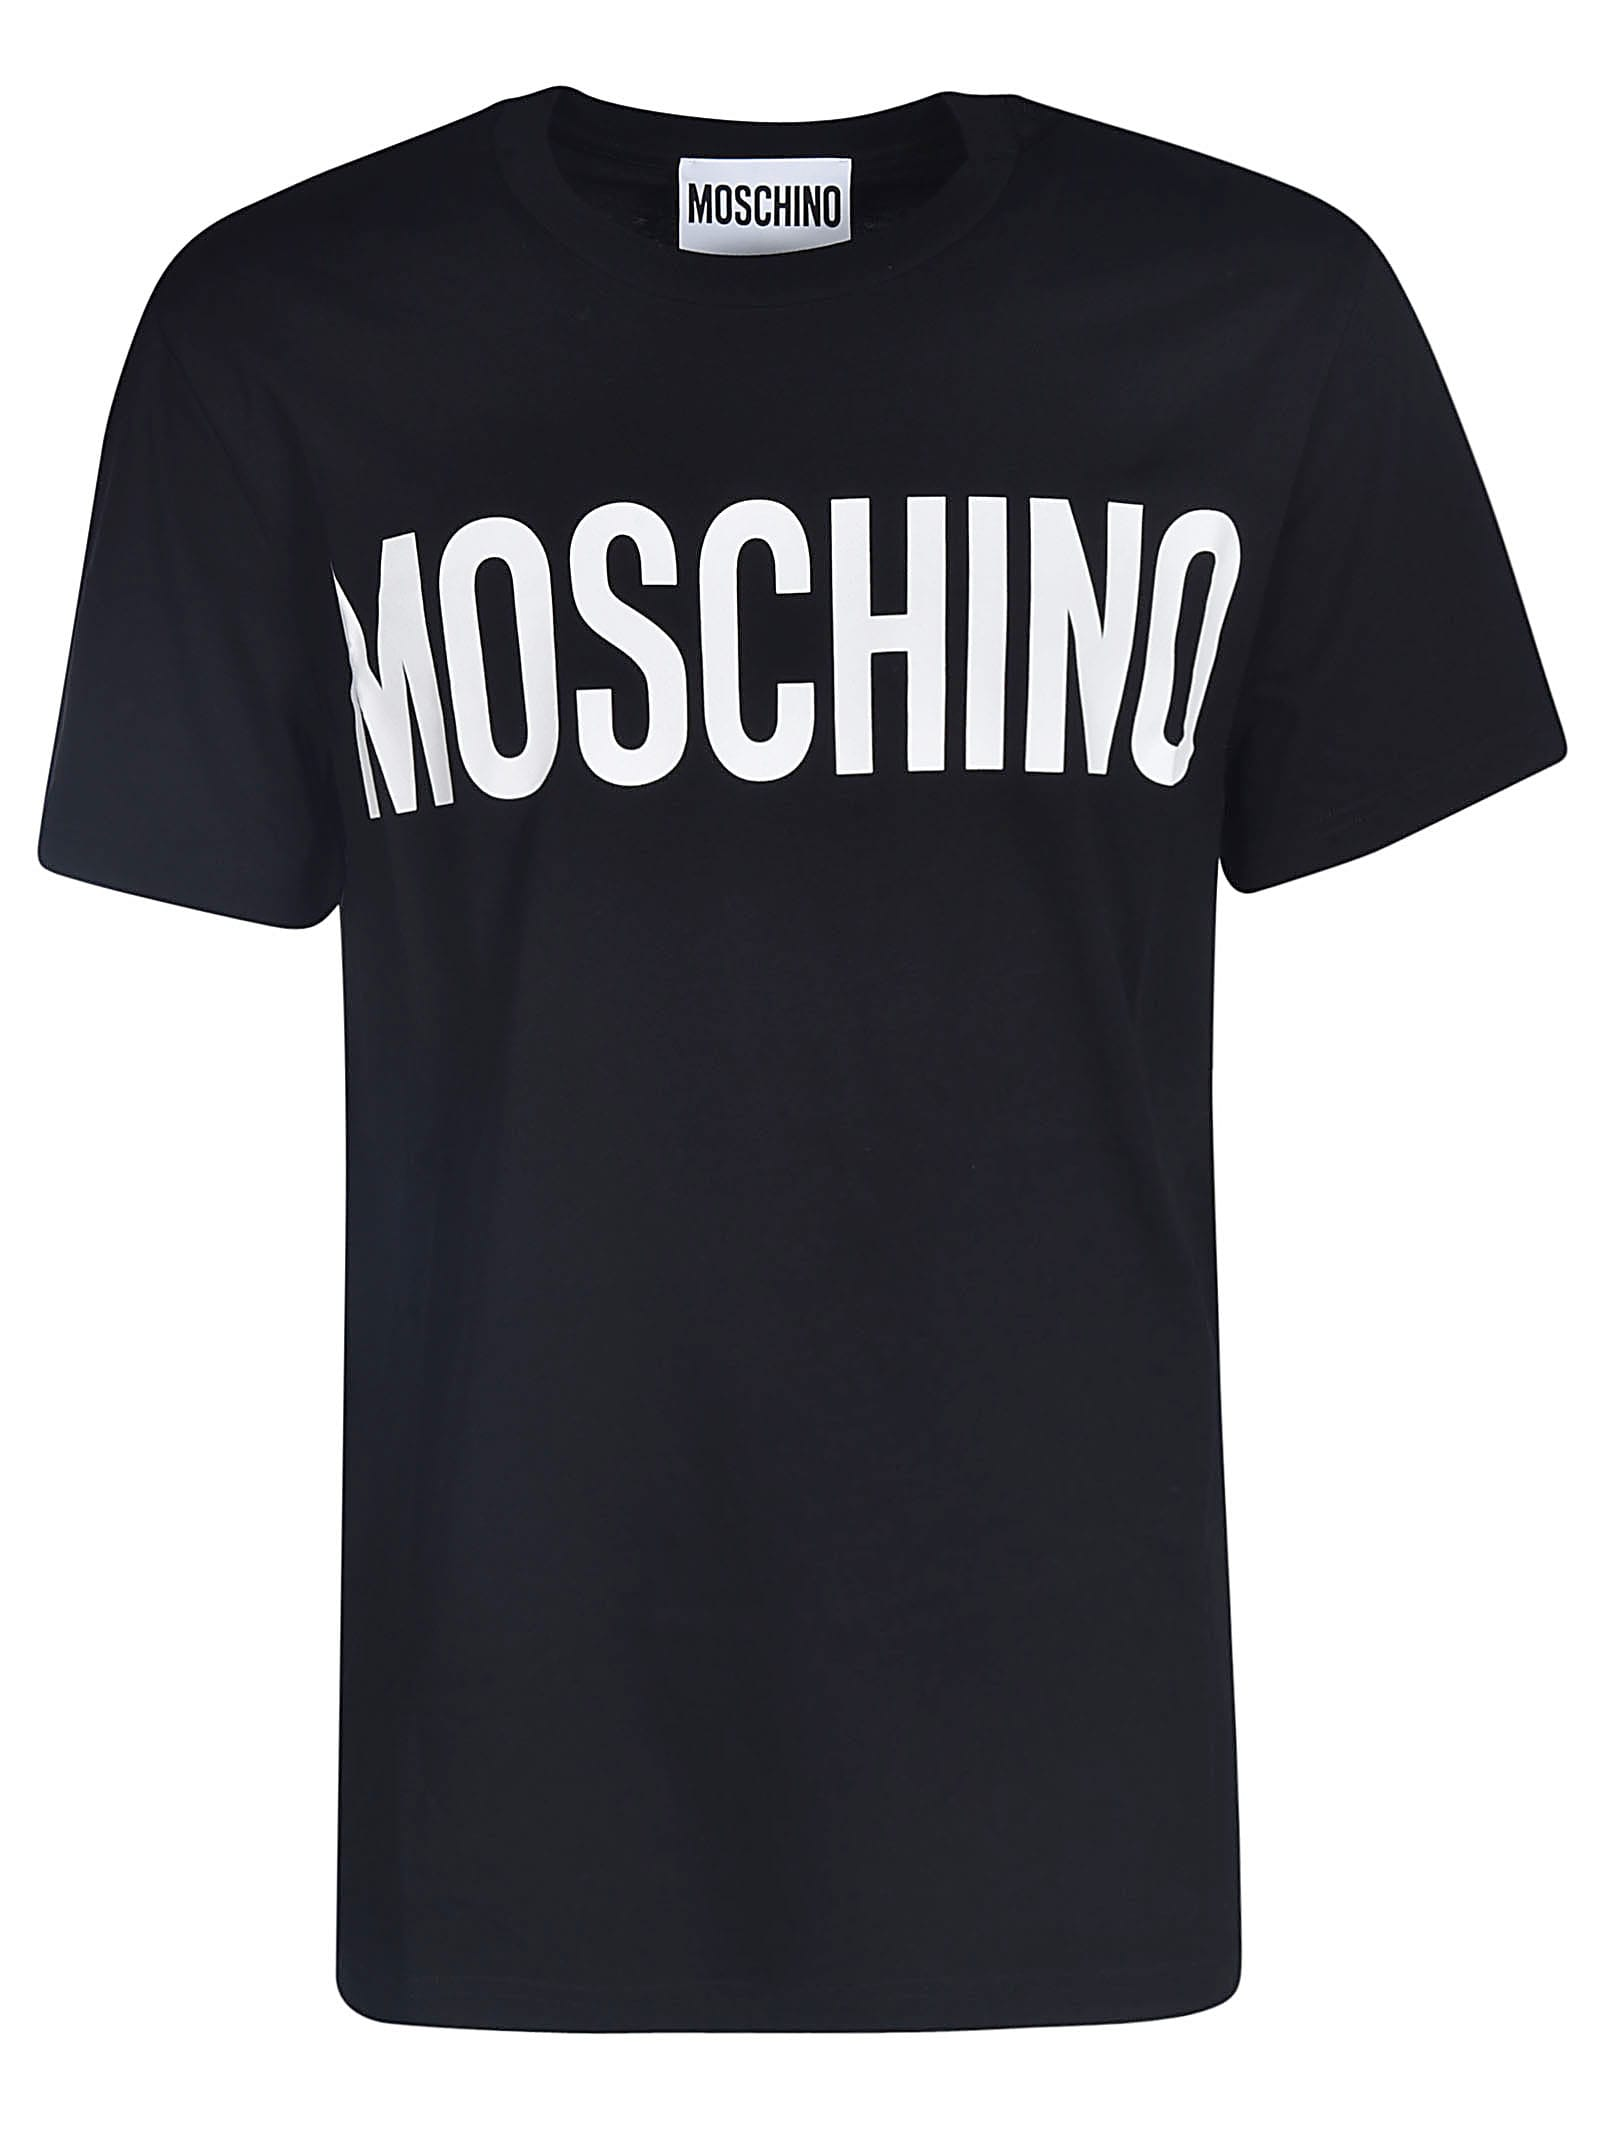 Classic Logo Print T-shirt from MoschinoComposition: 100% Cotton